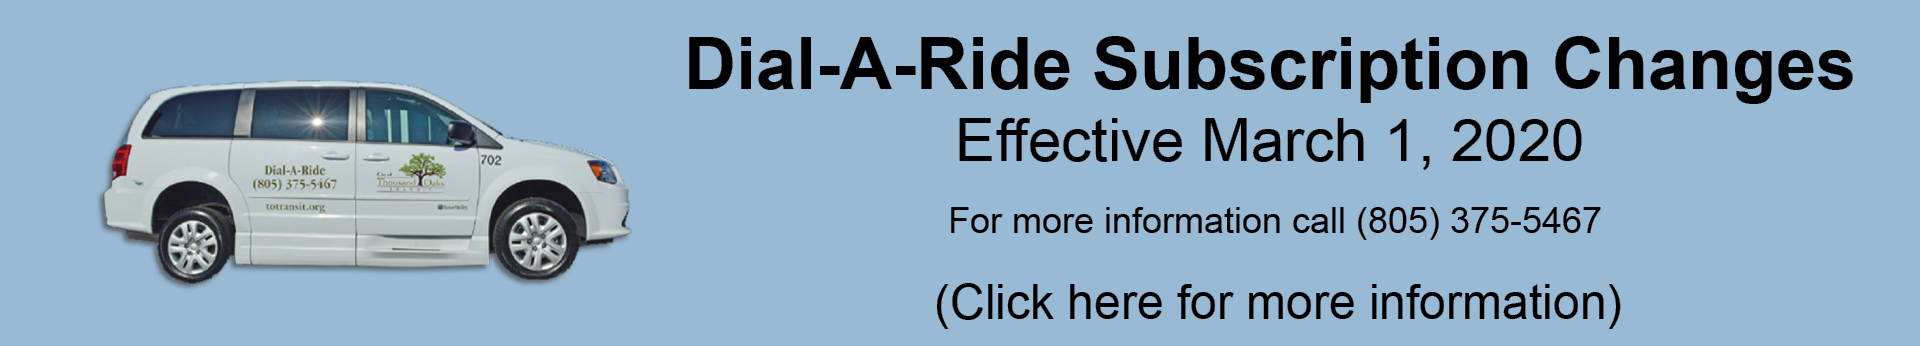 Dial-A-Ride subscription changes effective March 1, 2020. For more information call 805-375-5467. Click here for more information.